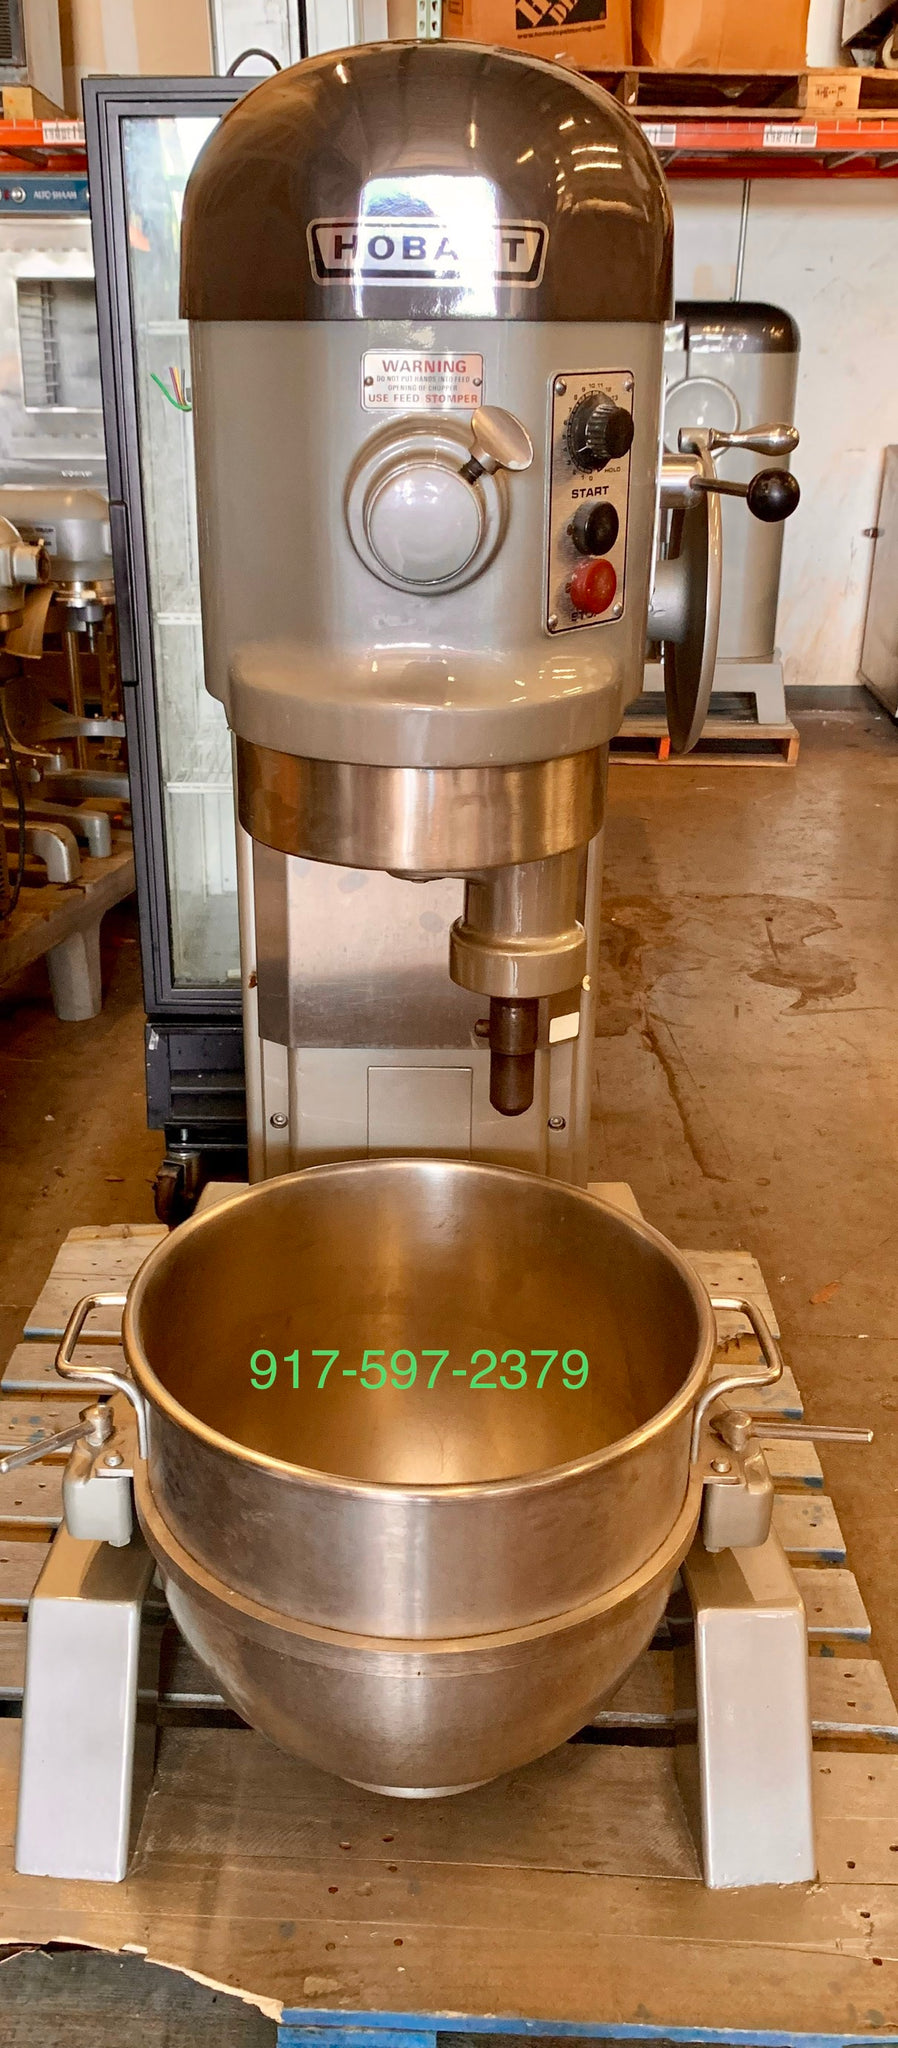 Hobart 60 Qt mixer 2 HP 3 phase comes with SS bowl and one attachment